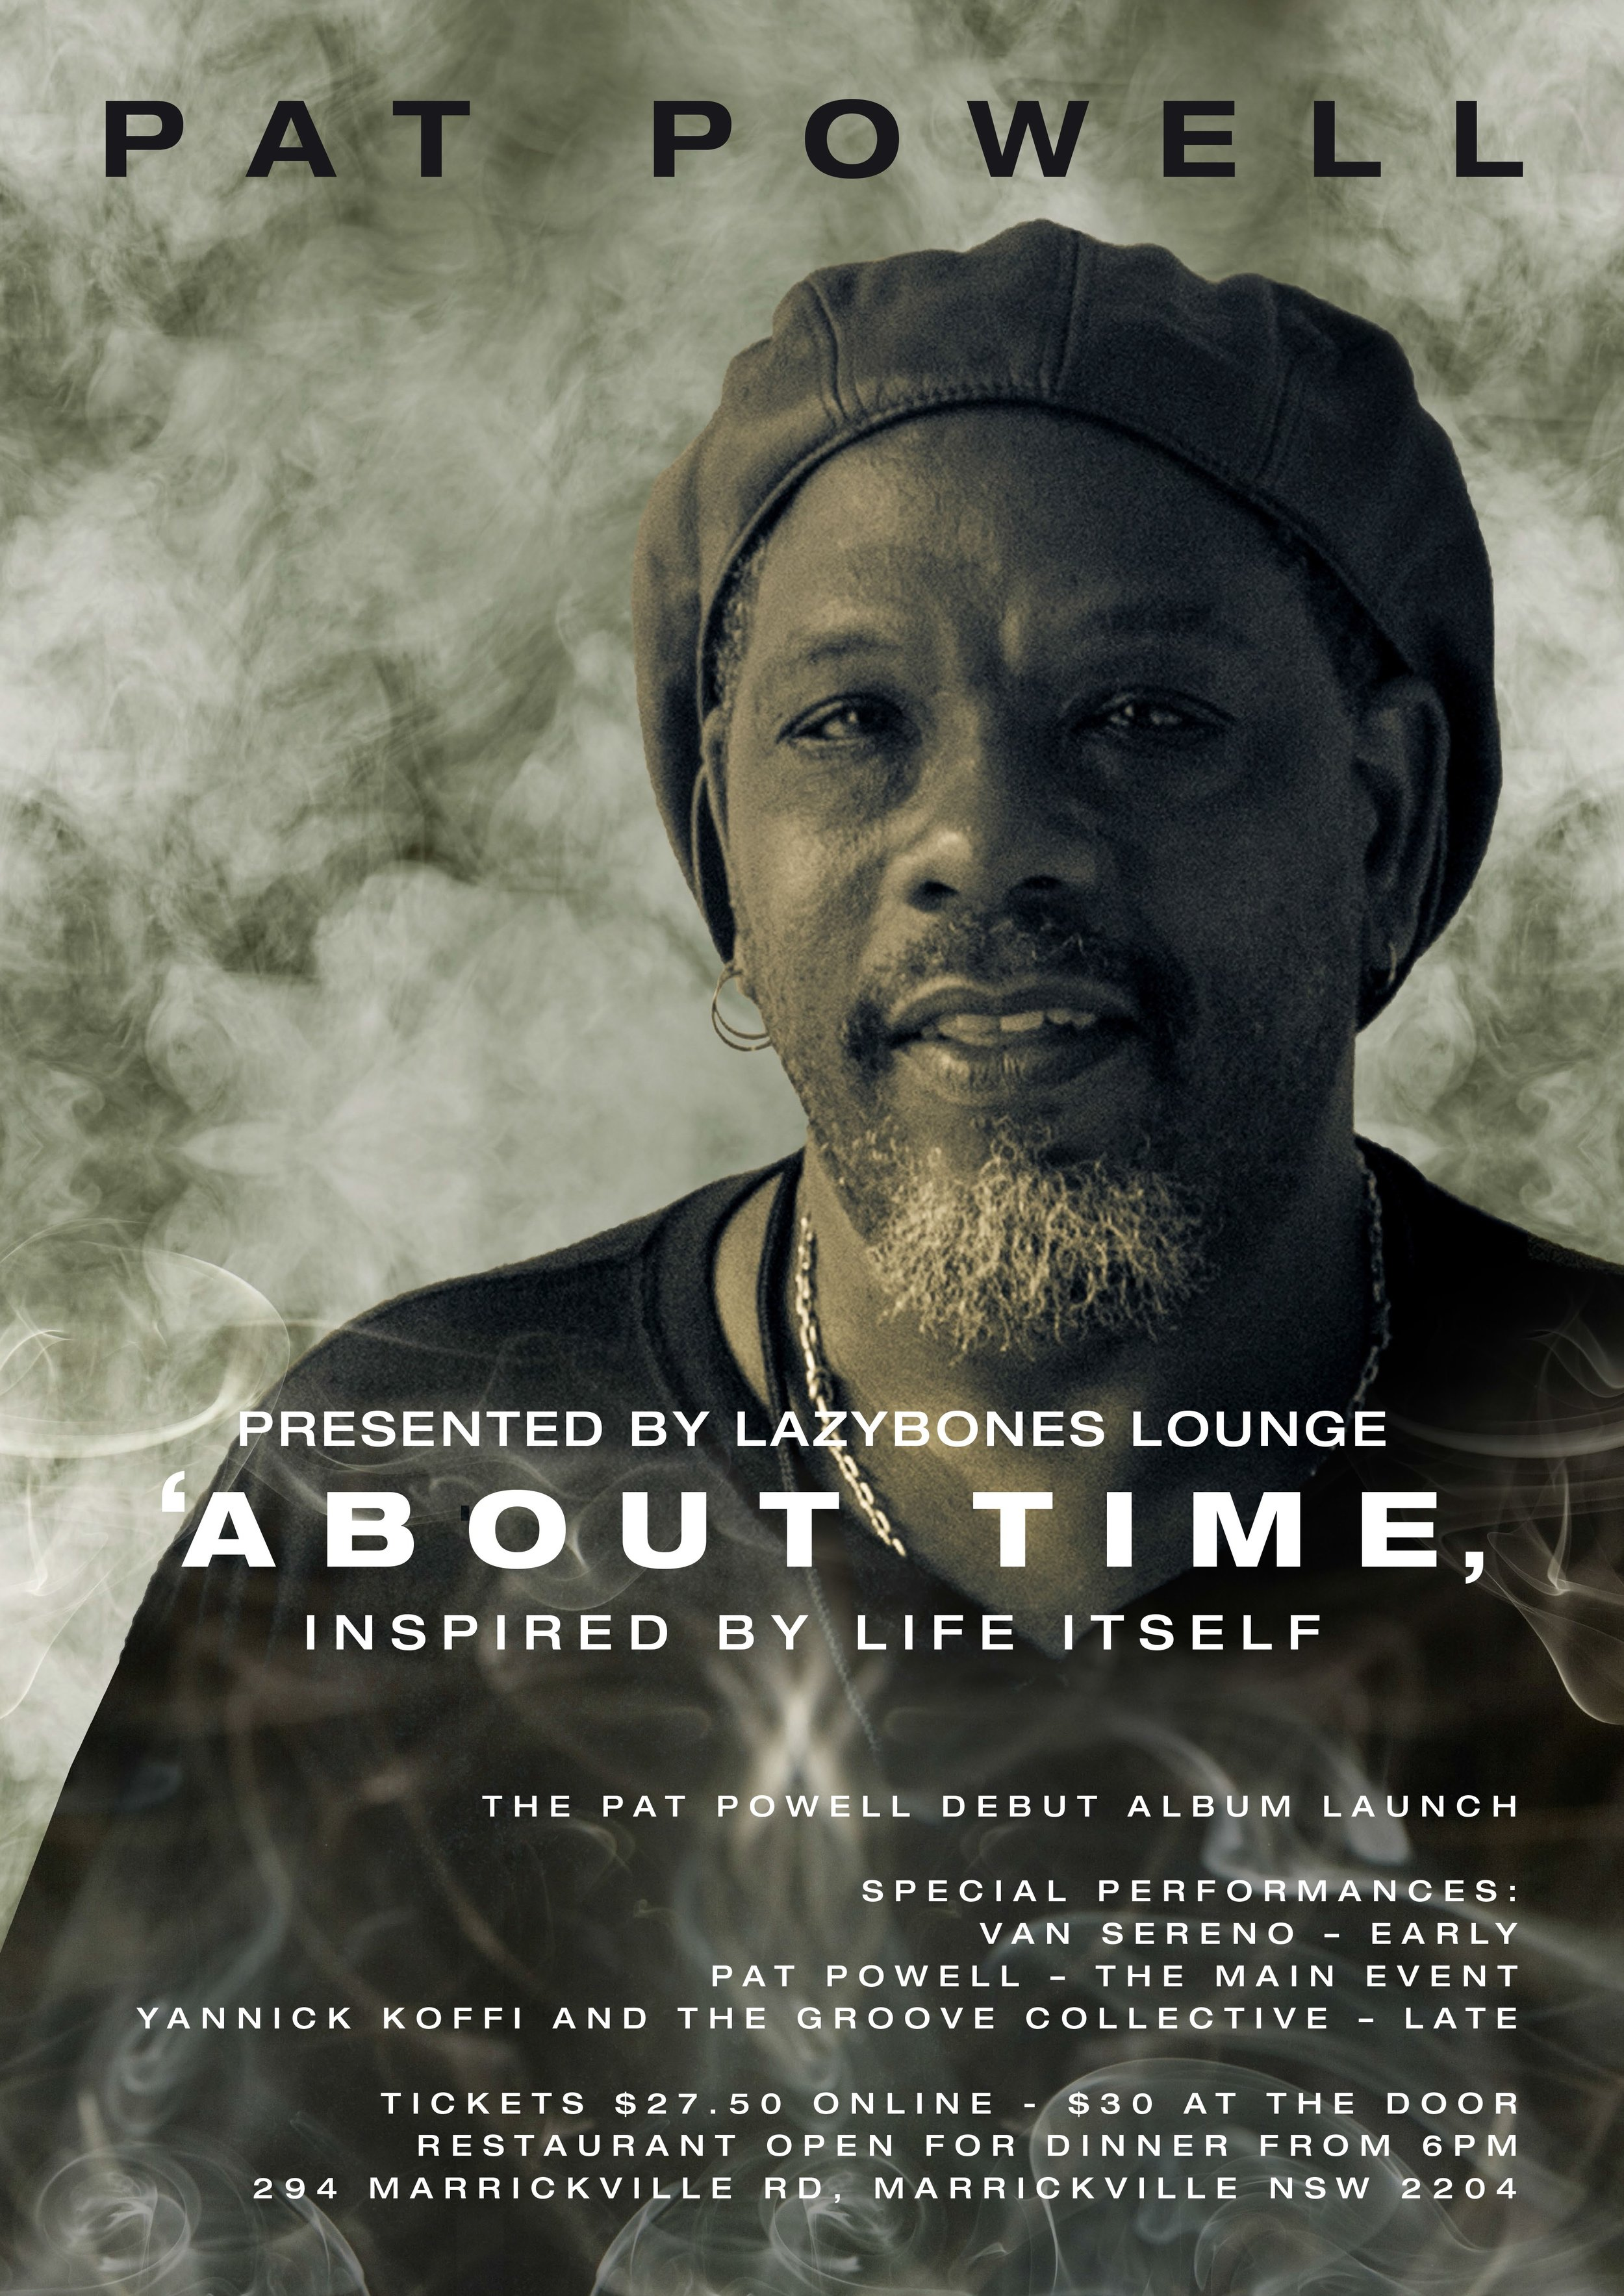 Pat Powell About Time A3 Launch2 copy.jpg